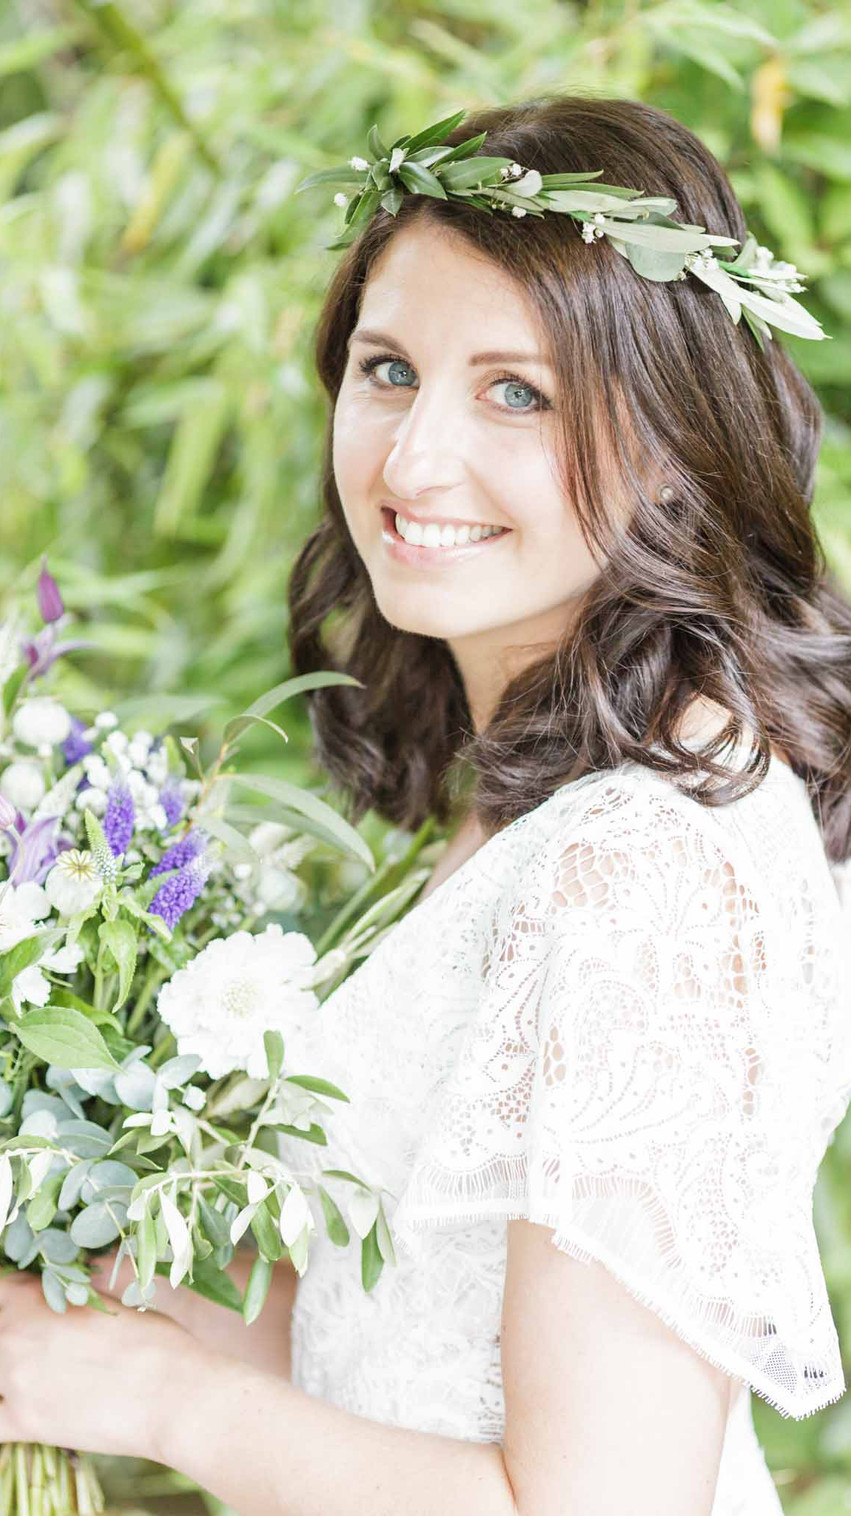 bride with a bouquet smiling for the camera in a garden